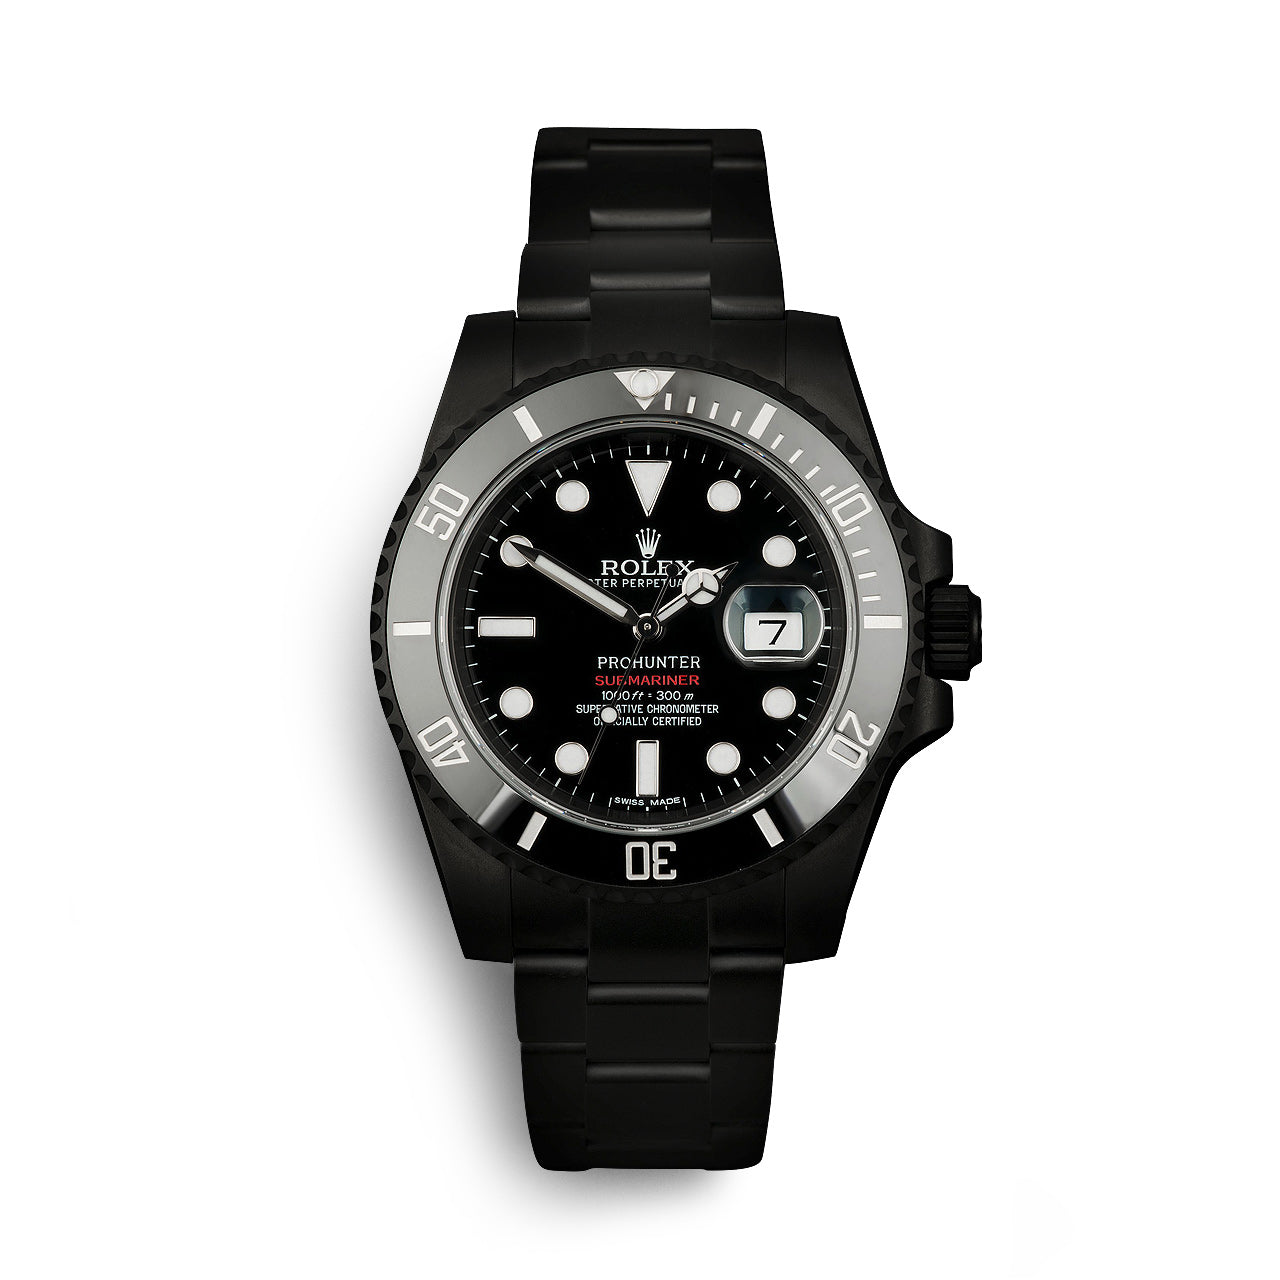 Pro Hunter Rolex Submariner Date Stealth Watch